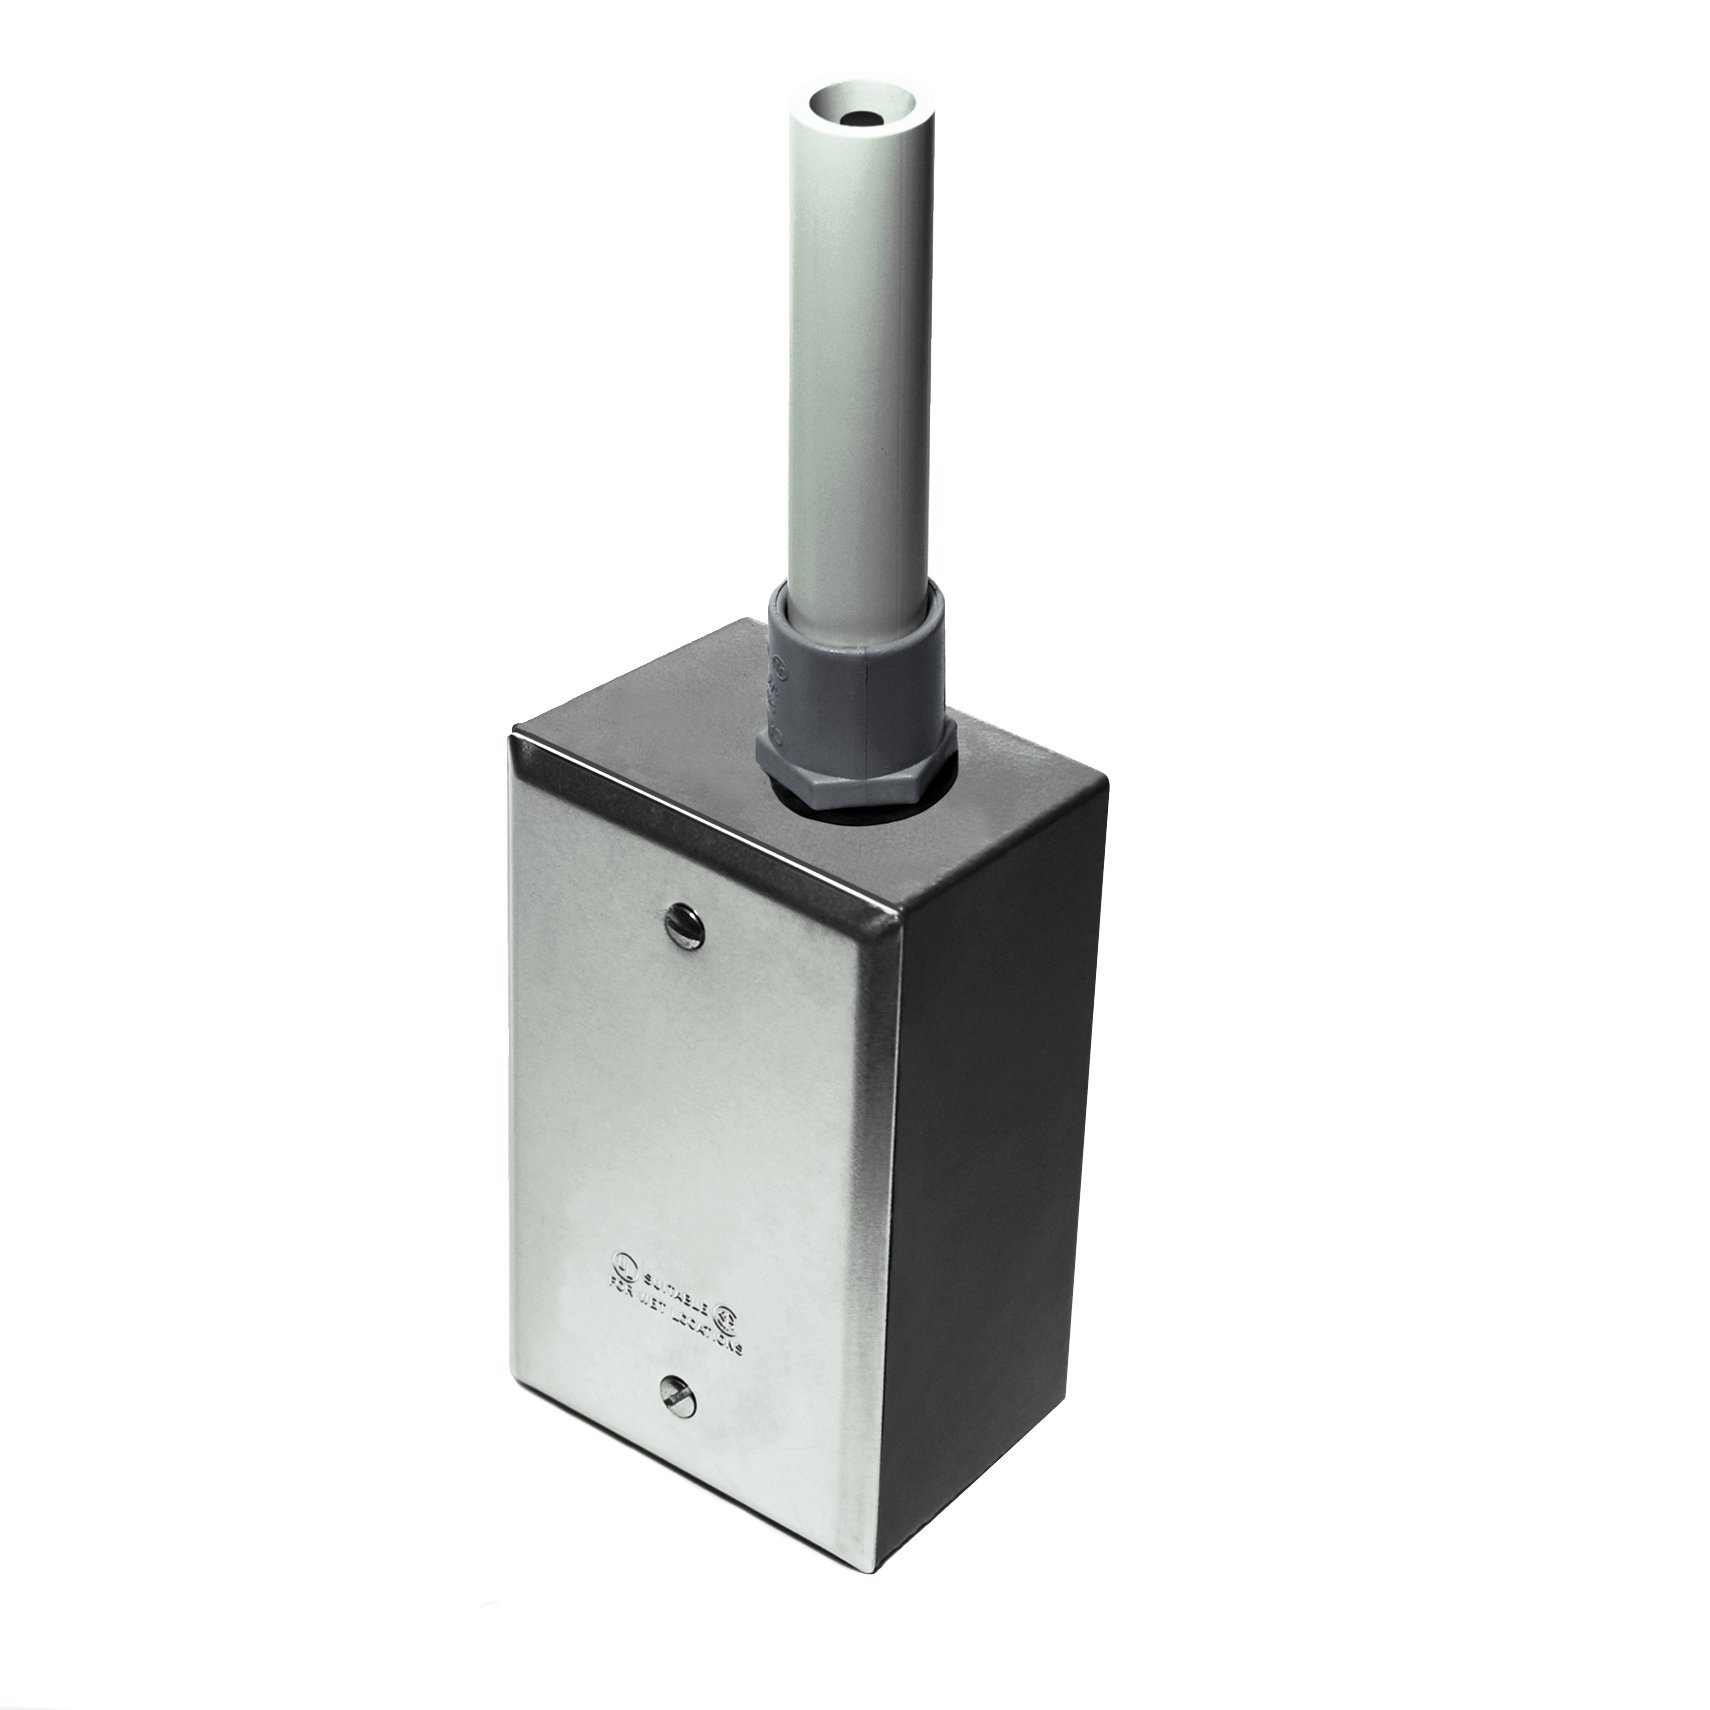 A/1K-2W-O-BB | ACI | RTD 1000 ohm (2 wire) | Outdoor Outside Air Temperature Sensor | NEMA 3R (Bell Box) Housing Enclosure Box |